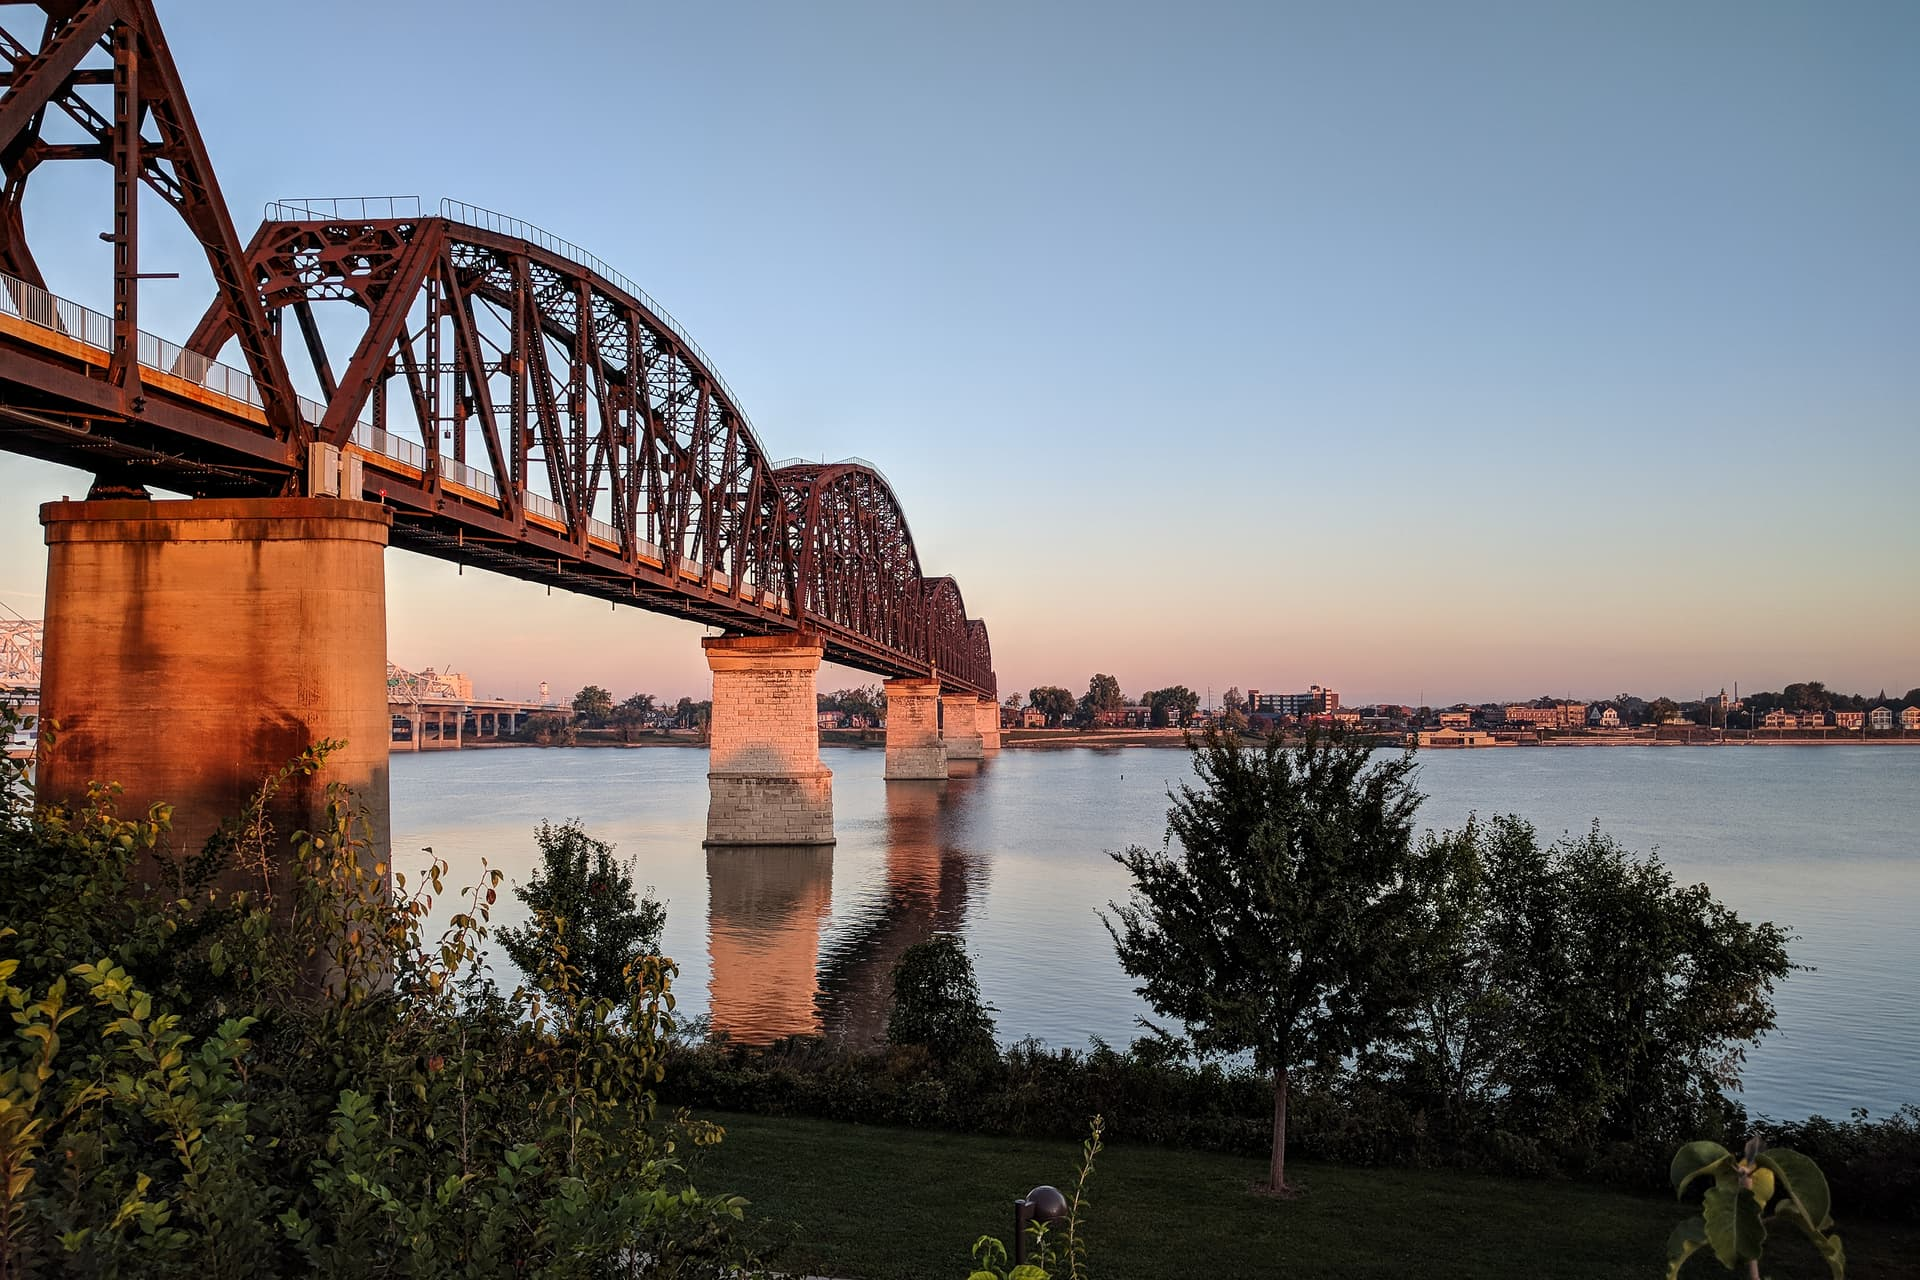 A steel foot bridge over the Ohio River, seen just after dawn.